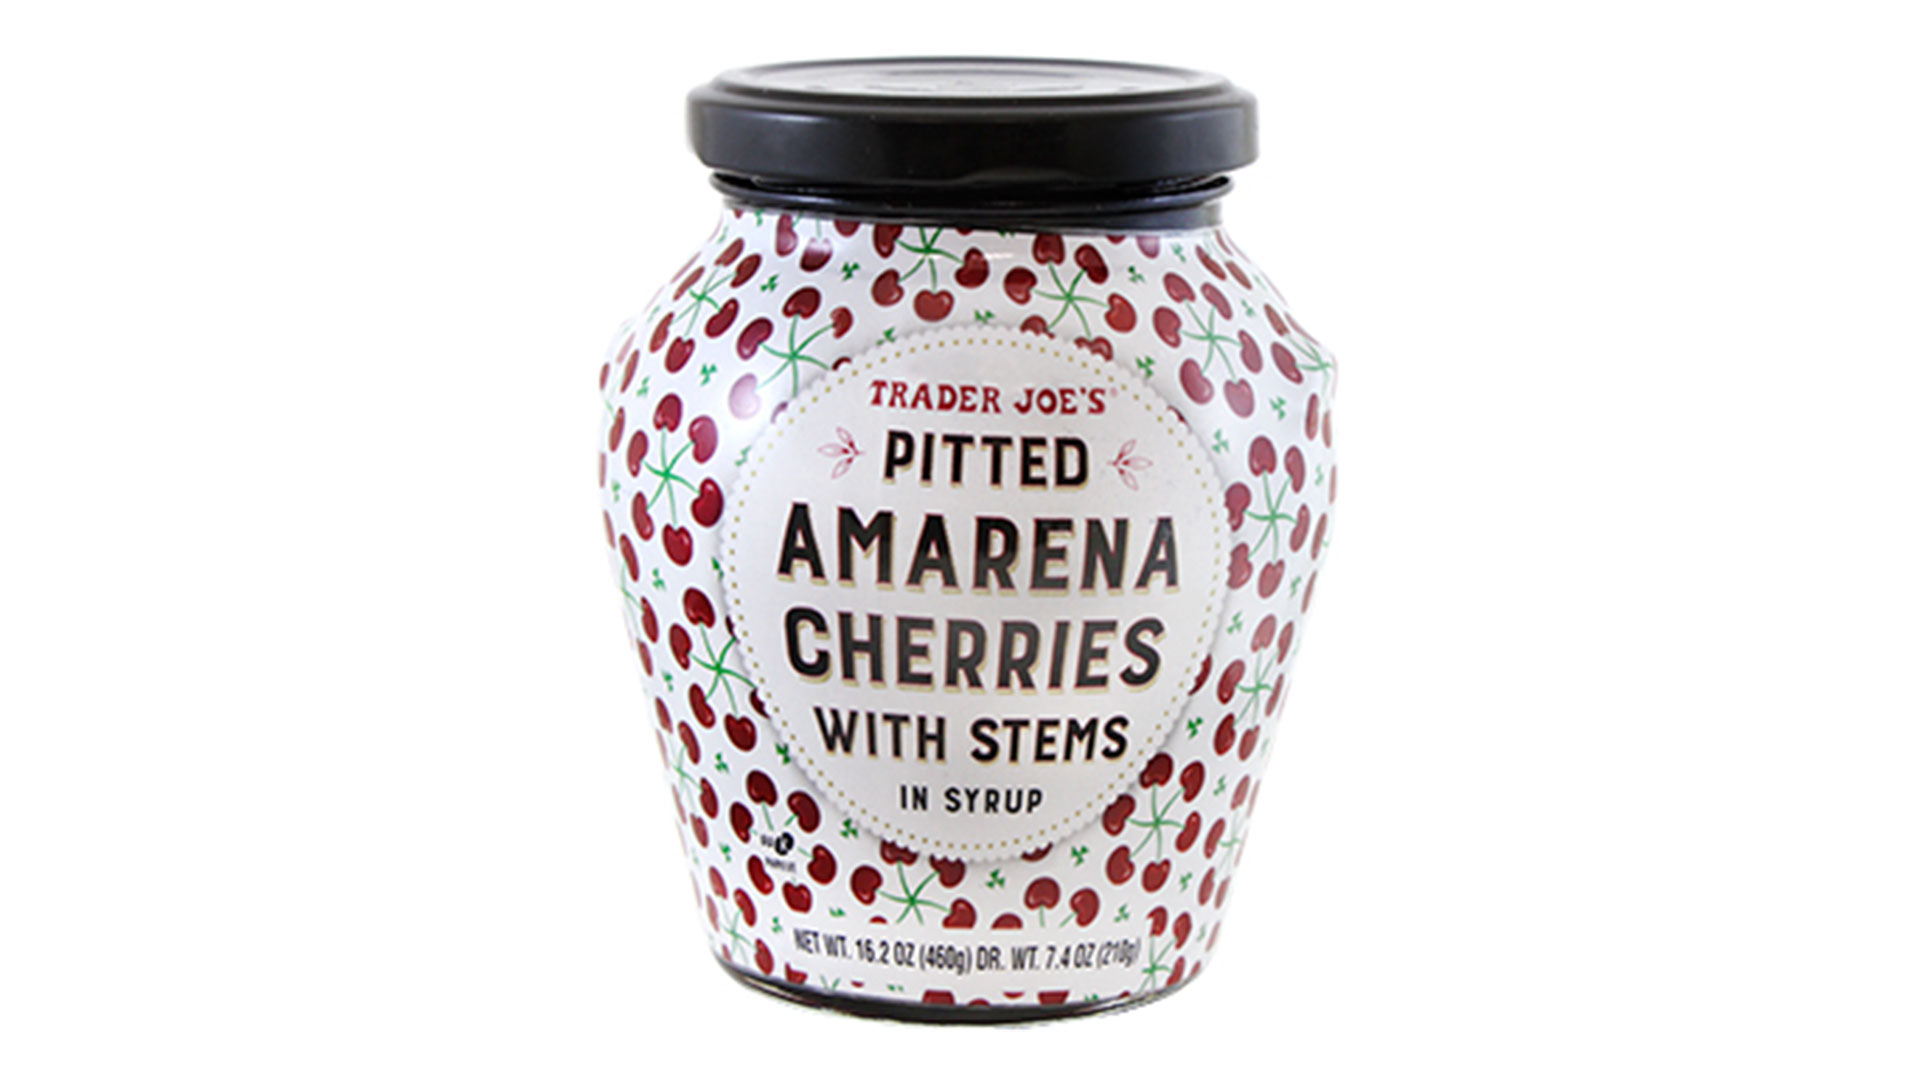 Pitted Amarena Cherries